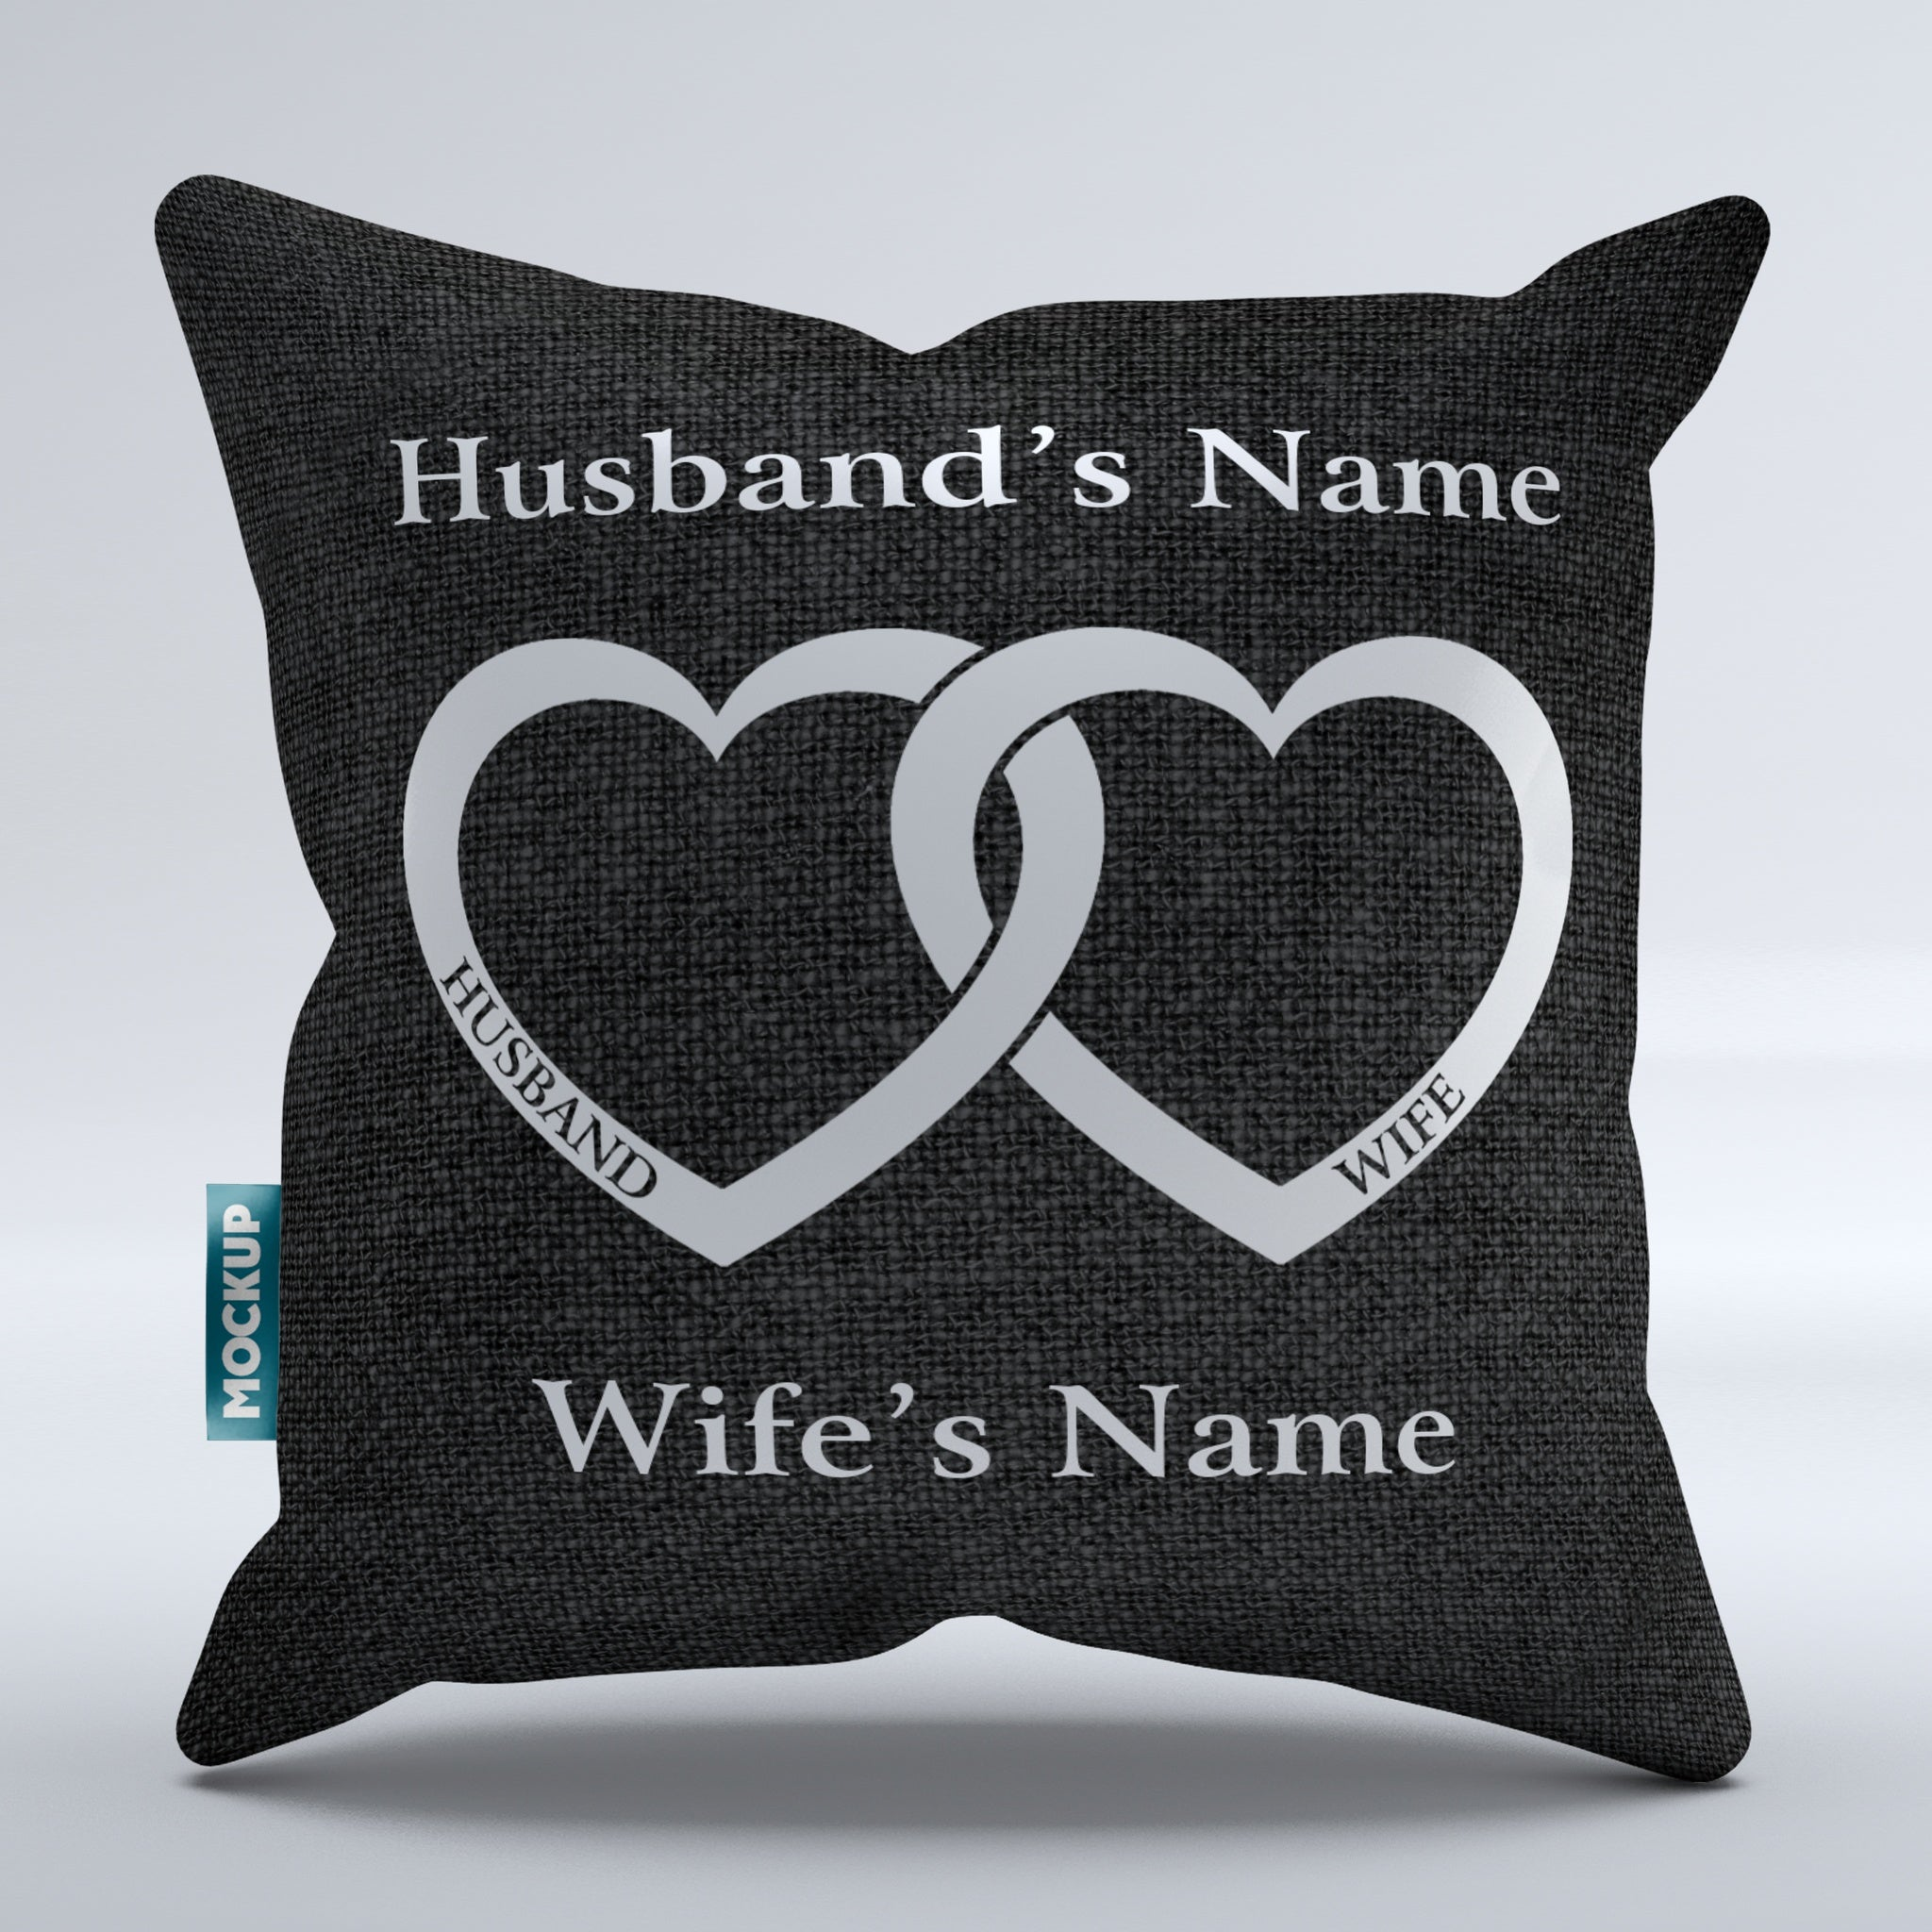 wife pin cushion for pillow white gift throw birthday anniversary cotton him pillows husband best